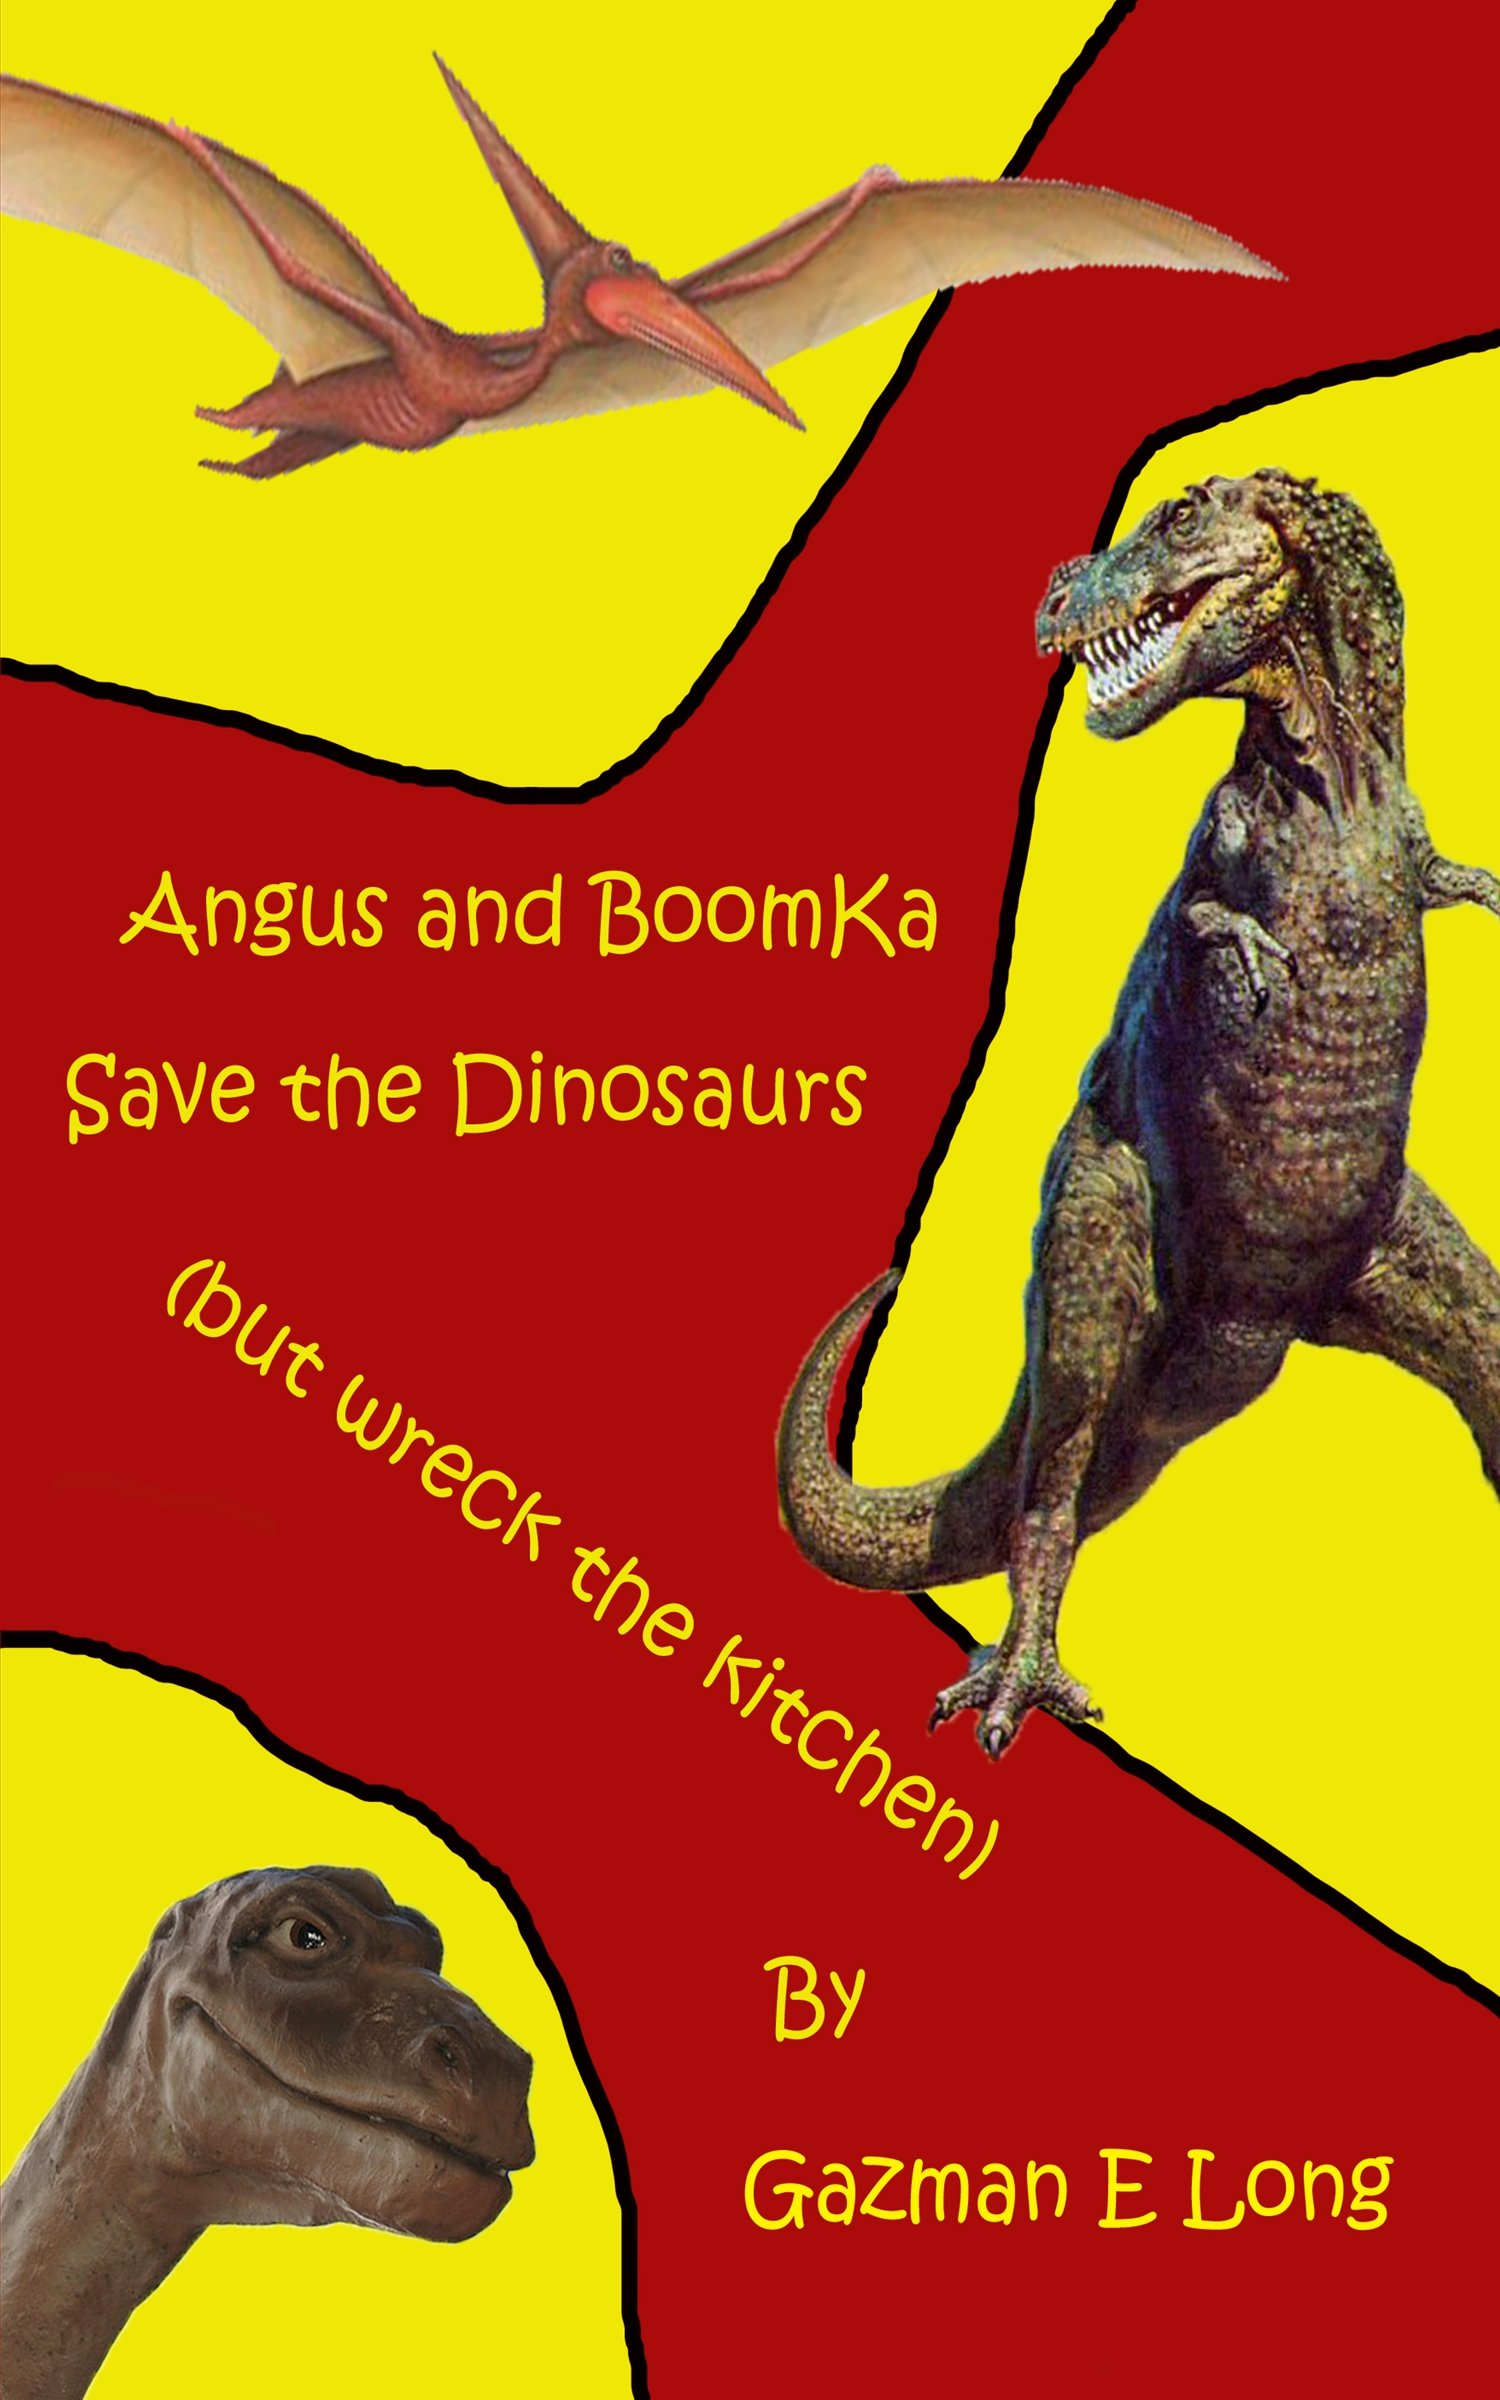 Read Online Angus and BoomKa Save the Dinosaurs (but wreck the kitchen) pdf epub